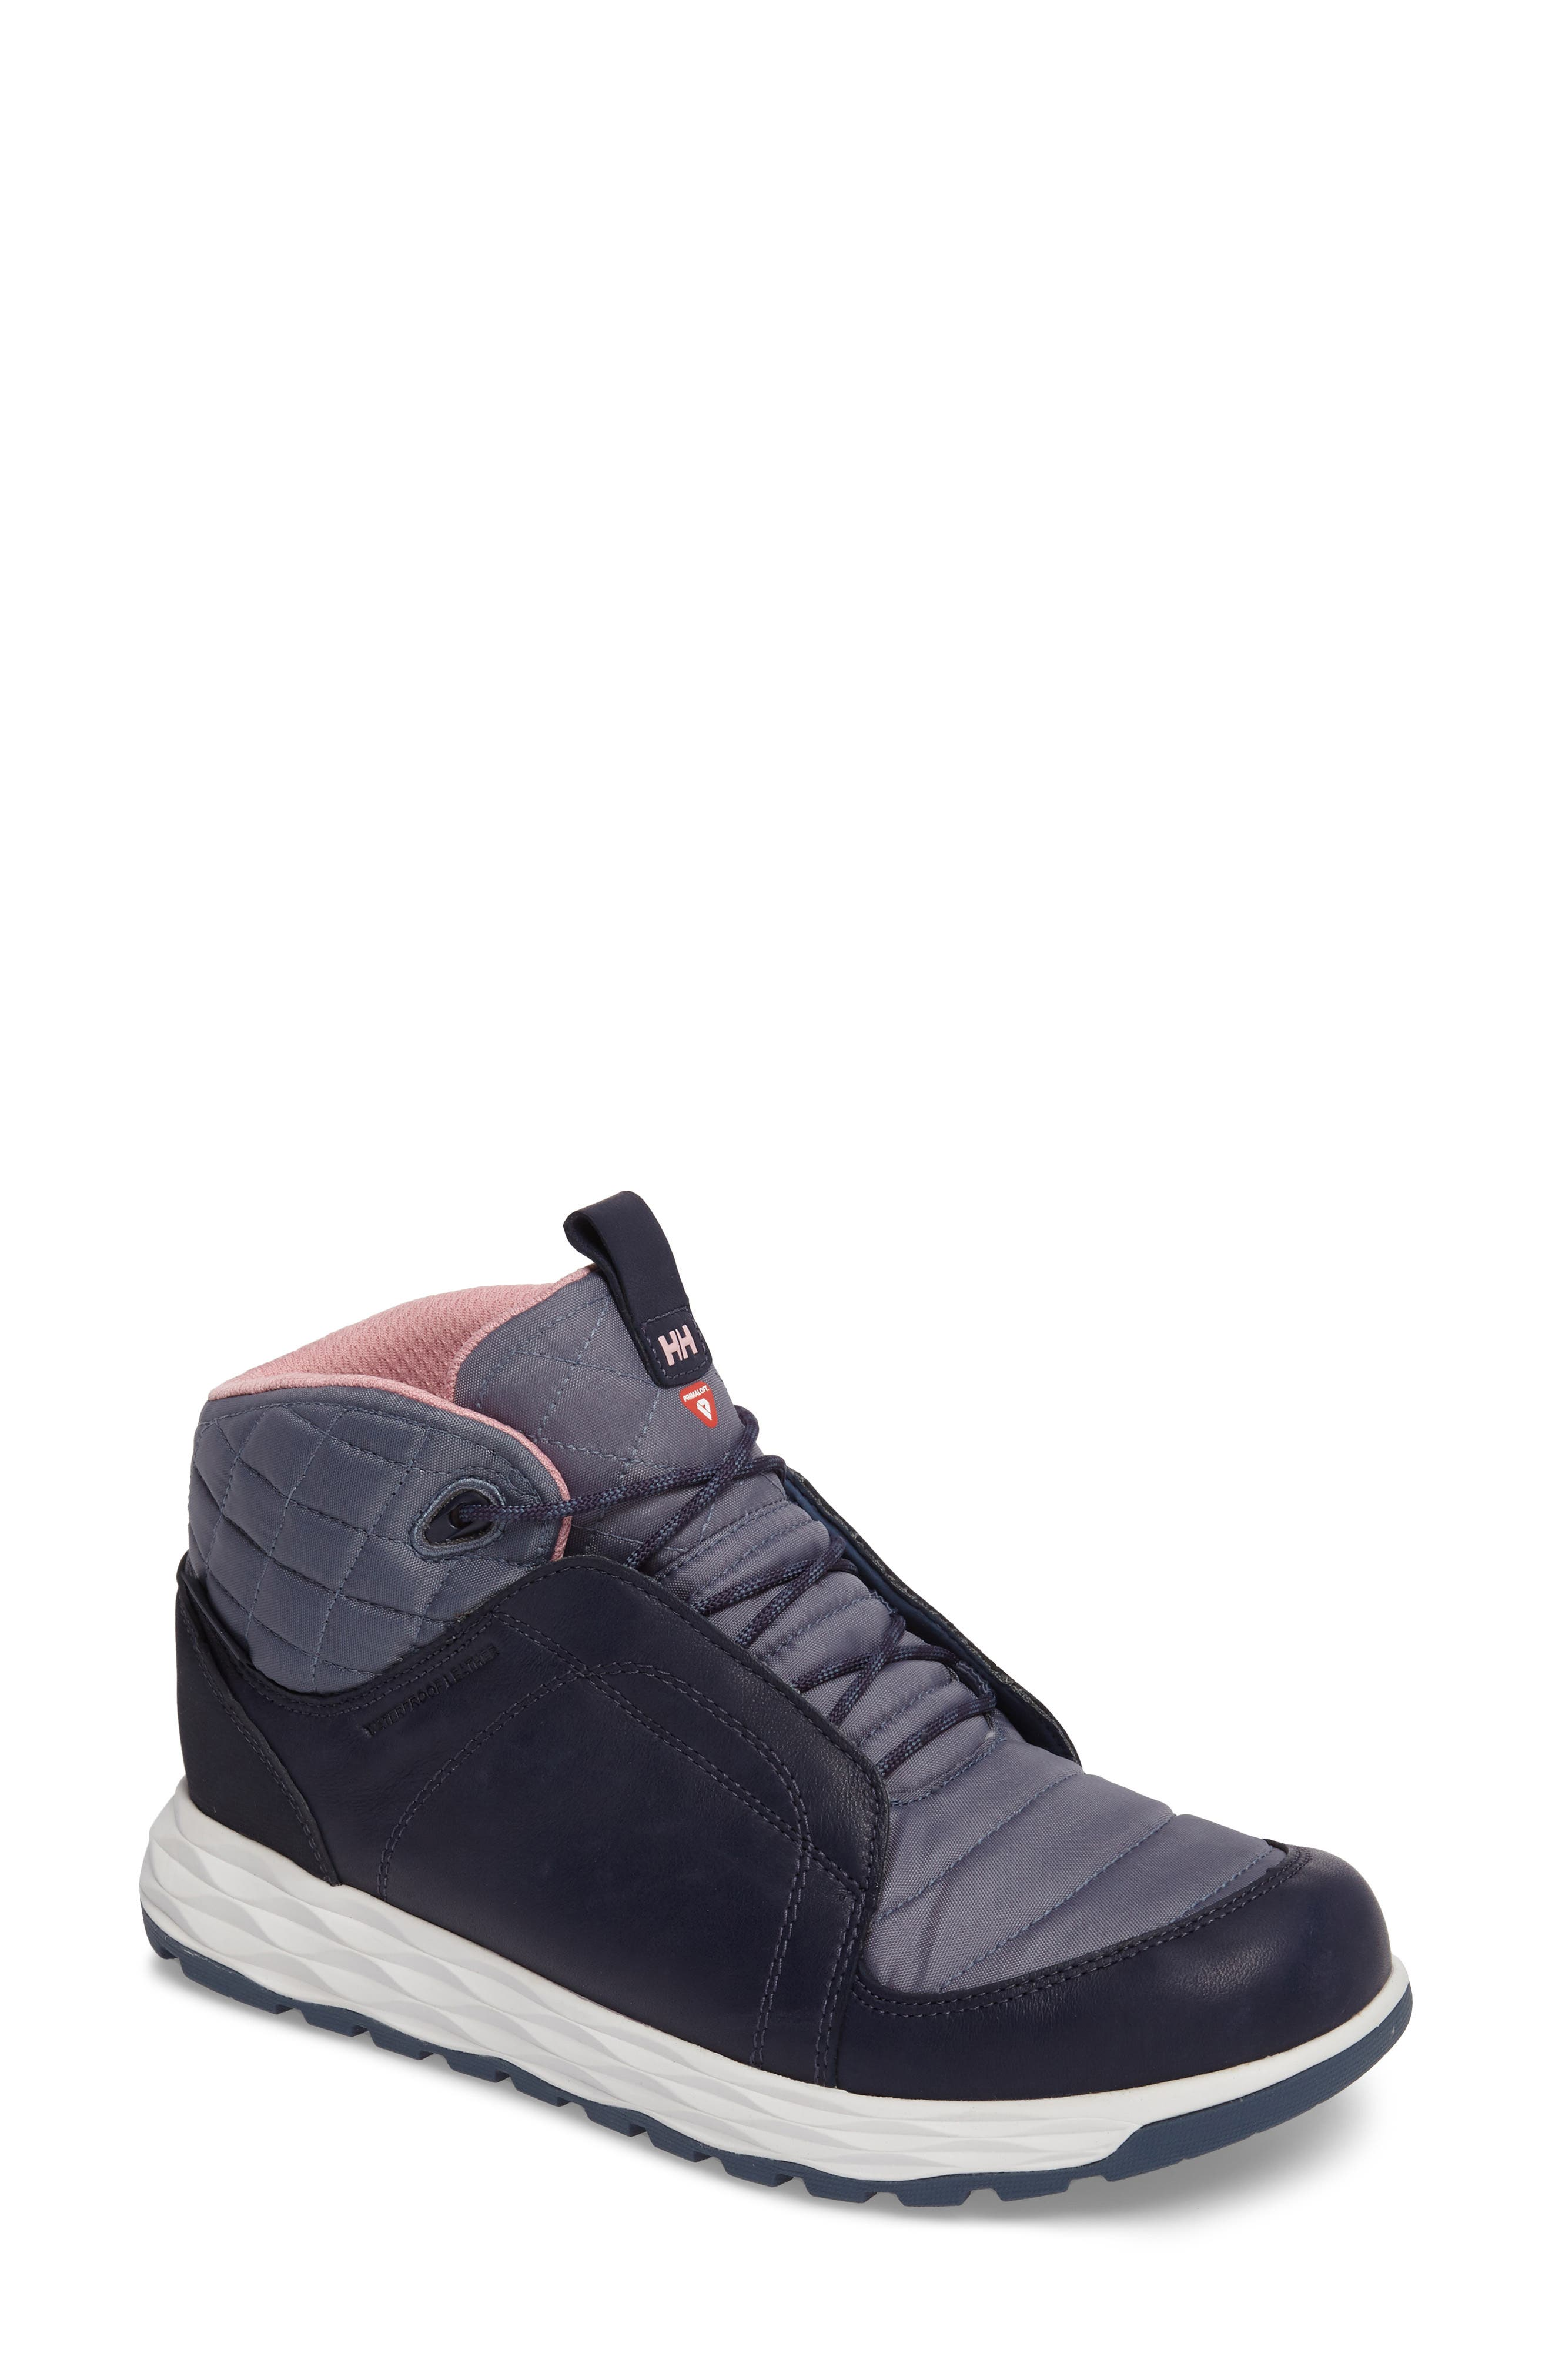 Helly Hansen Ten Below Waterproof High Top Sneaker (Women)